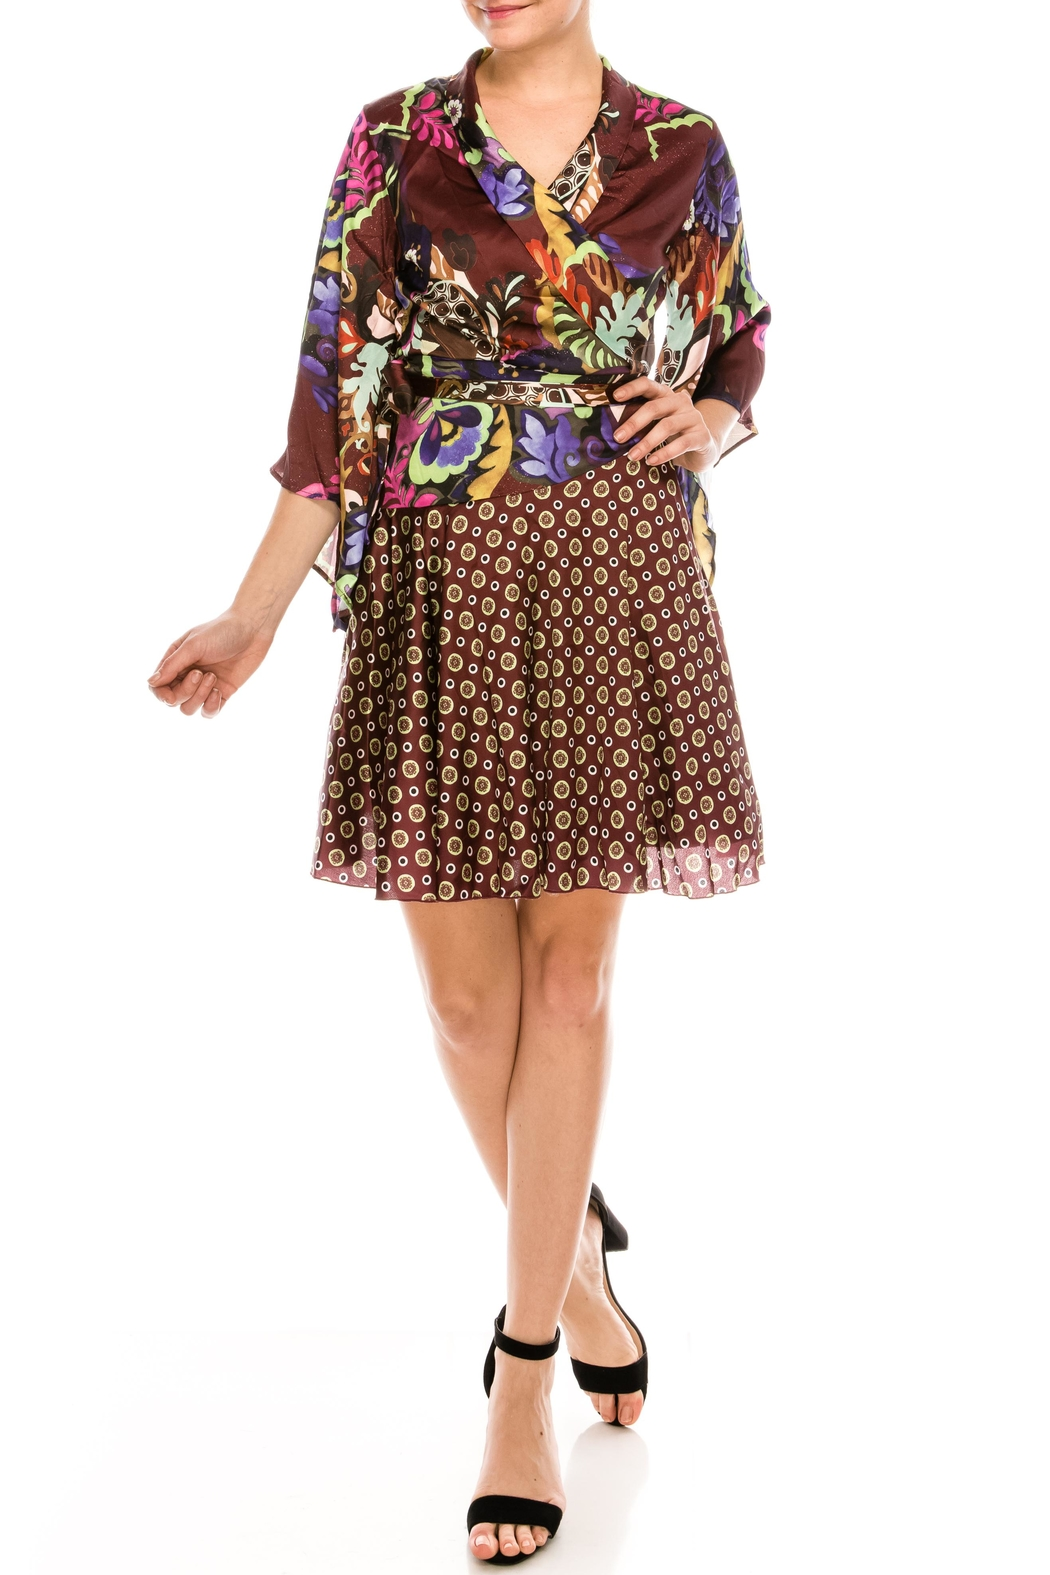 cq by cq Mixed Print Dress - Front Cropped Image